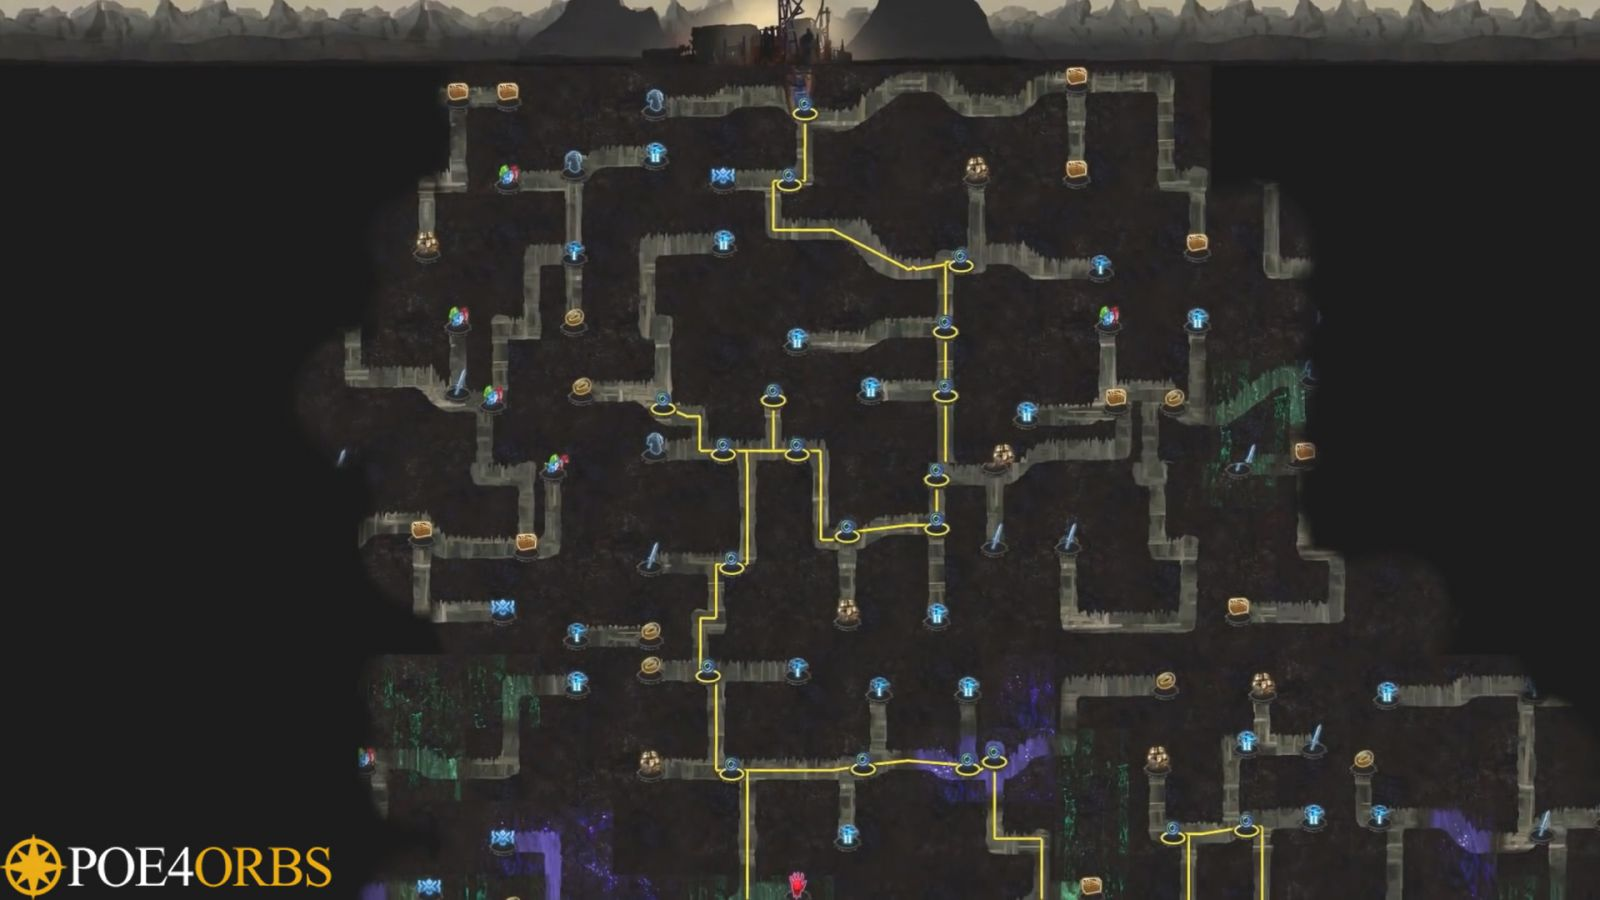 Path of Exile - Delve Infinite Dungeon